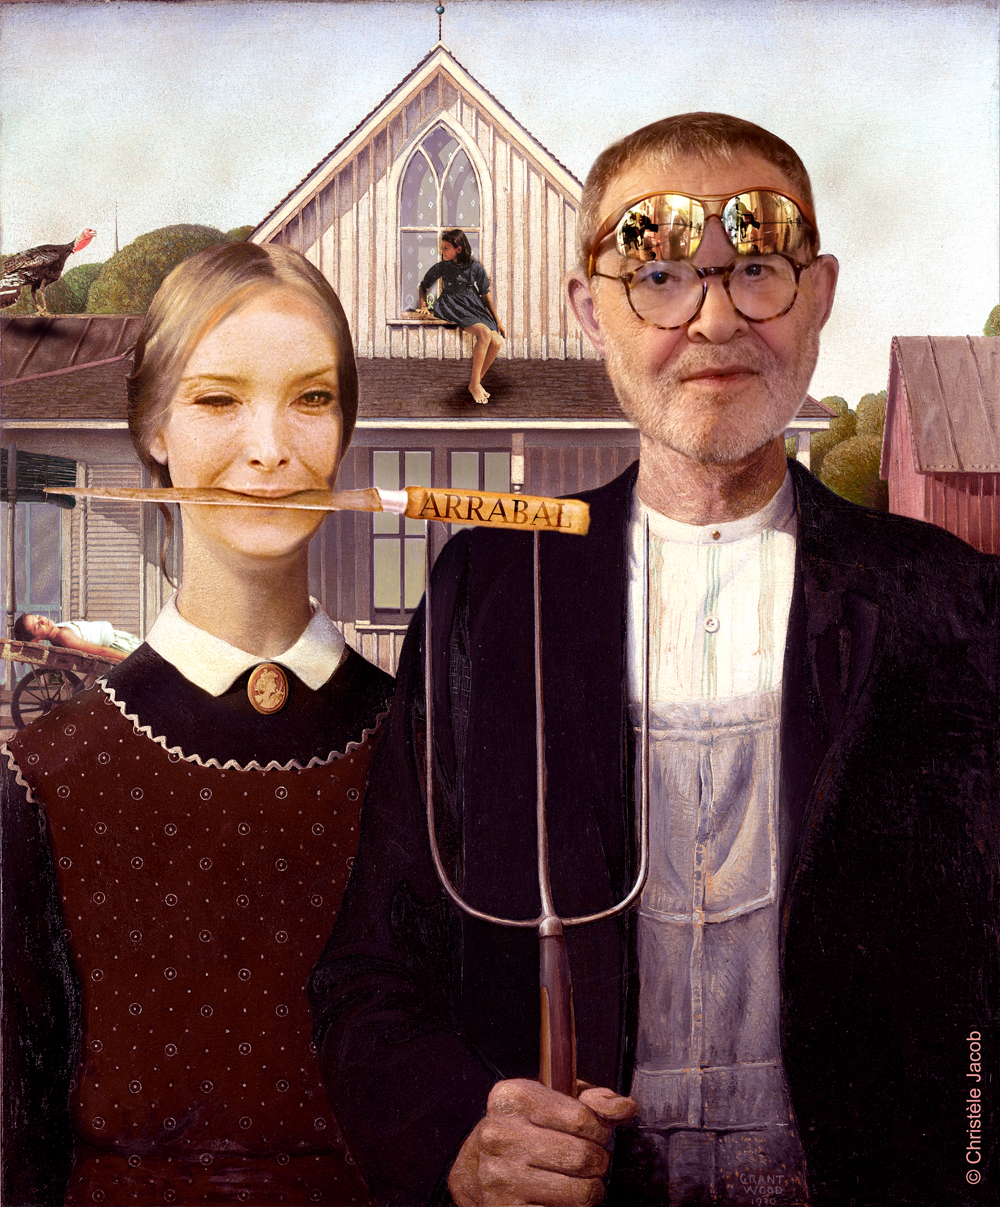 American gothic, Grant Wood 74x62 1930